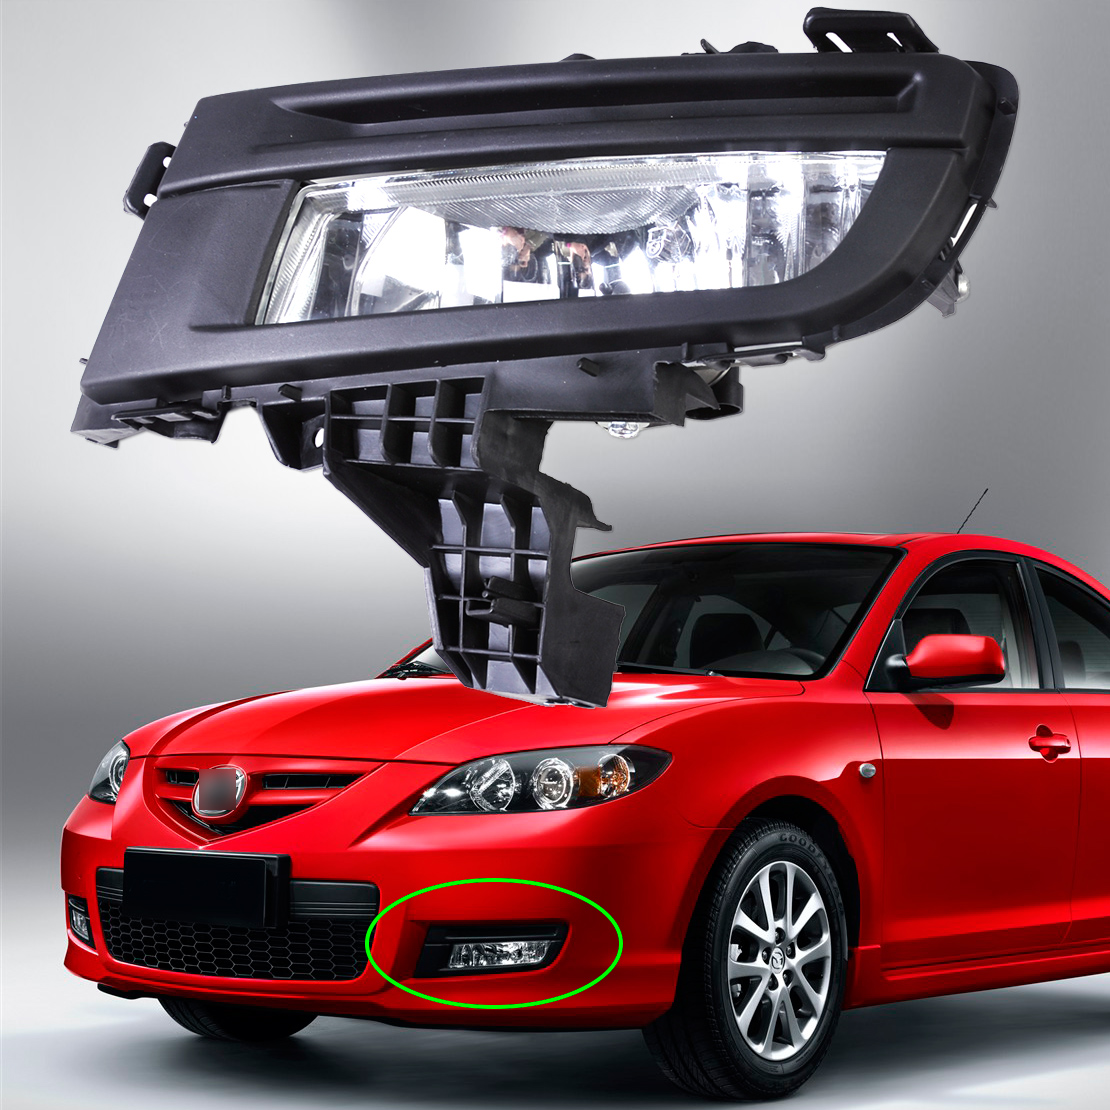 beler  New high quality ABS plastic New Front Left Fog Light Lamp 9006 12V 51W Replacement MA2592113 for Mazda 3 2007 2008 2009 beler new high quality abs plastic new front left fog light lamp 9006 12v 51w replacement ma2592113 for mazda 3 2007 2008 2009